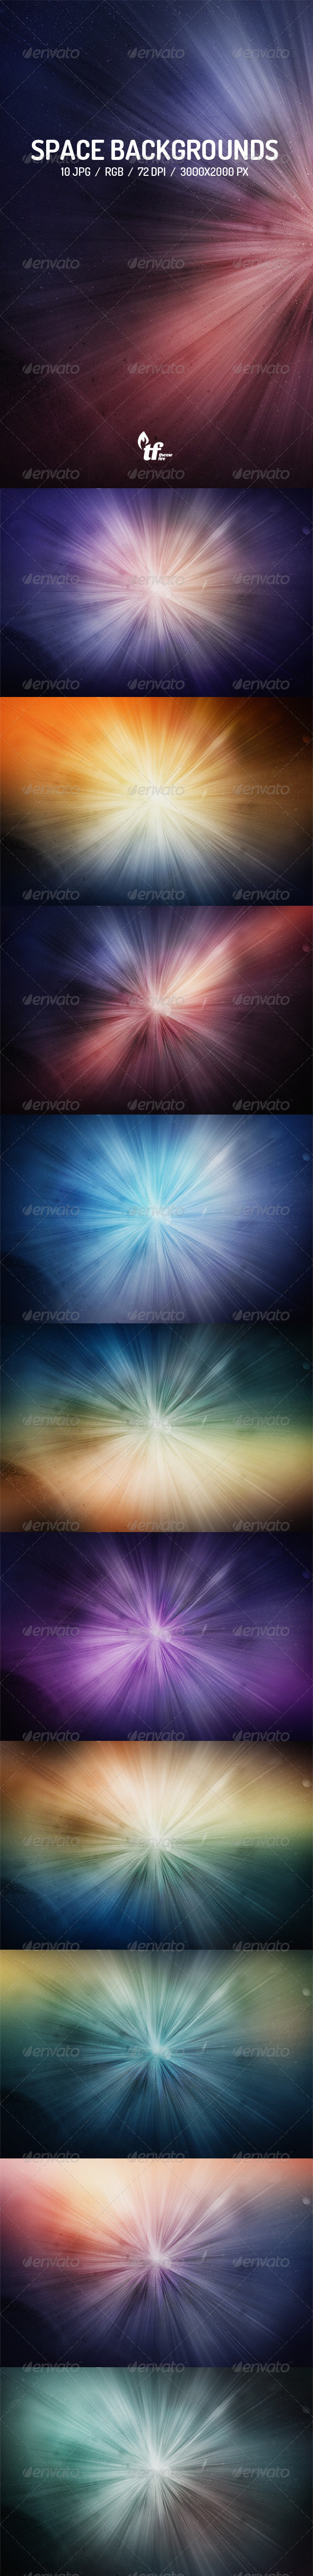 10 Space Light Backgrounds - Abstract Backgrounds